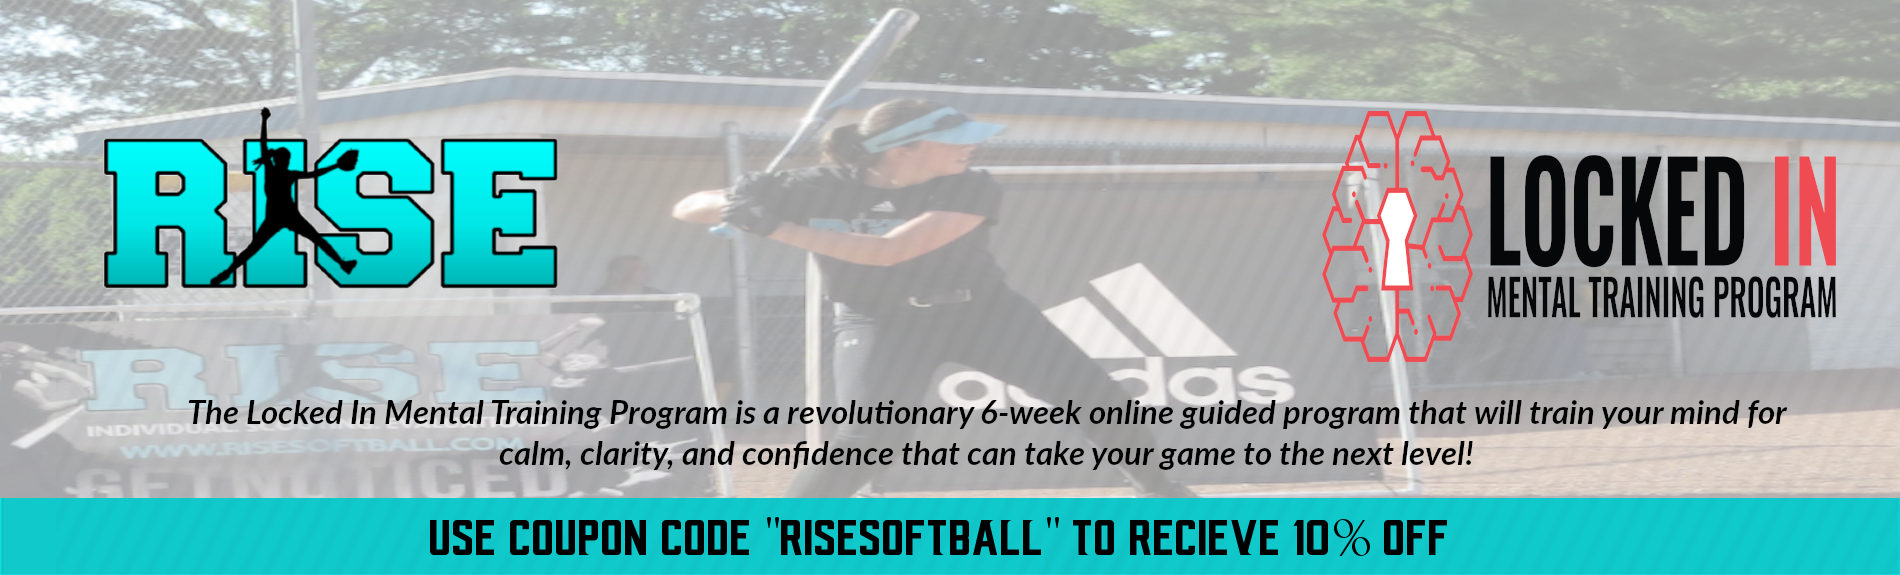 RISE Softball partners with Locked In Mental Training Program